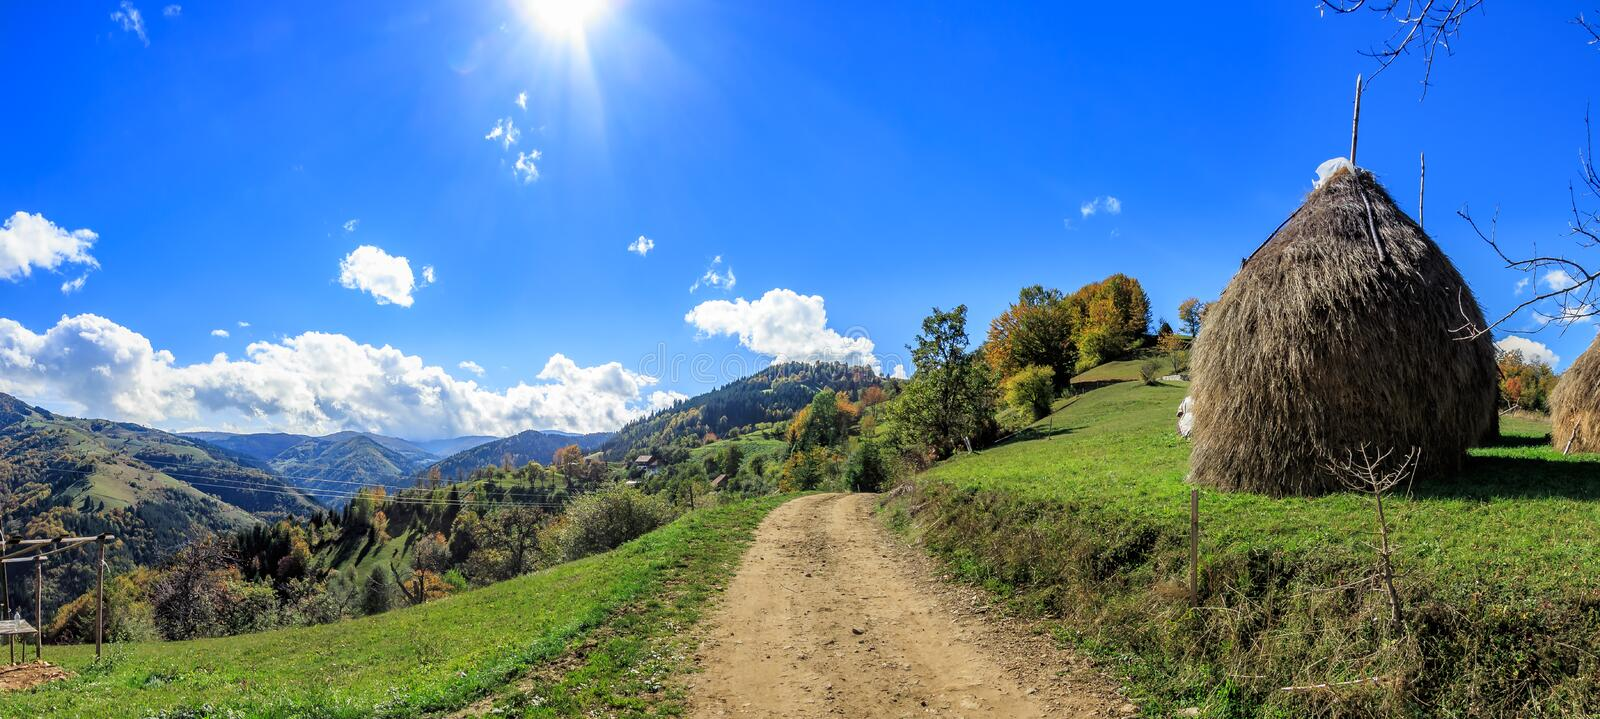 Panoramic view of rural mountain village road in autumn stock photography